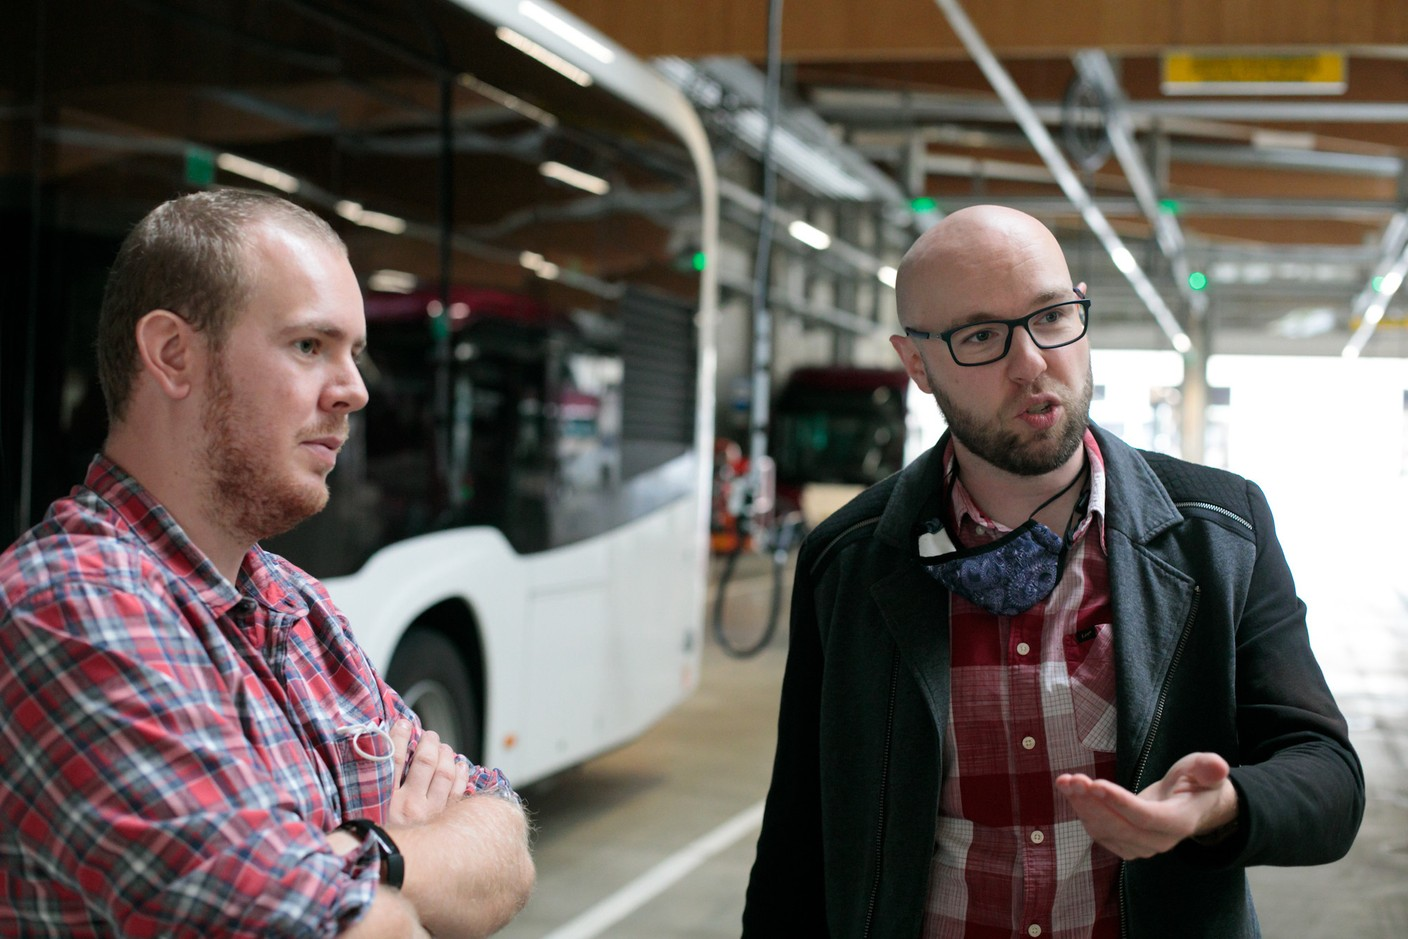 Charel Schmit and Cyrille Horper, head of charging infrastructure and head of marketing, explain how the Nightlifebuses will go electric from Friday. (Photo: Matic Zorman/Maison Moderne)